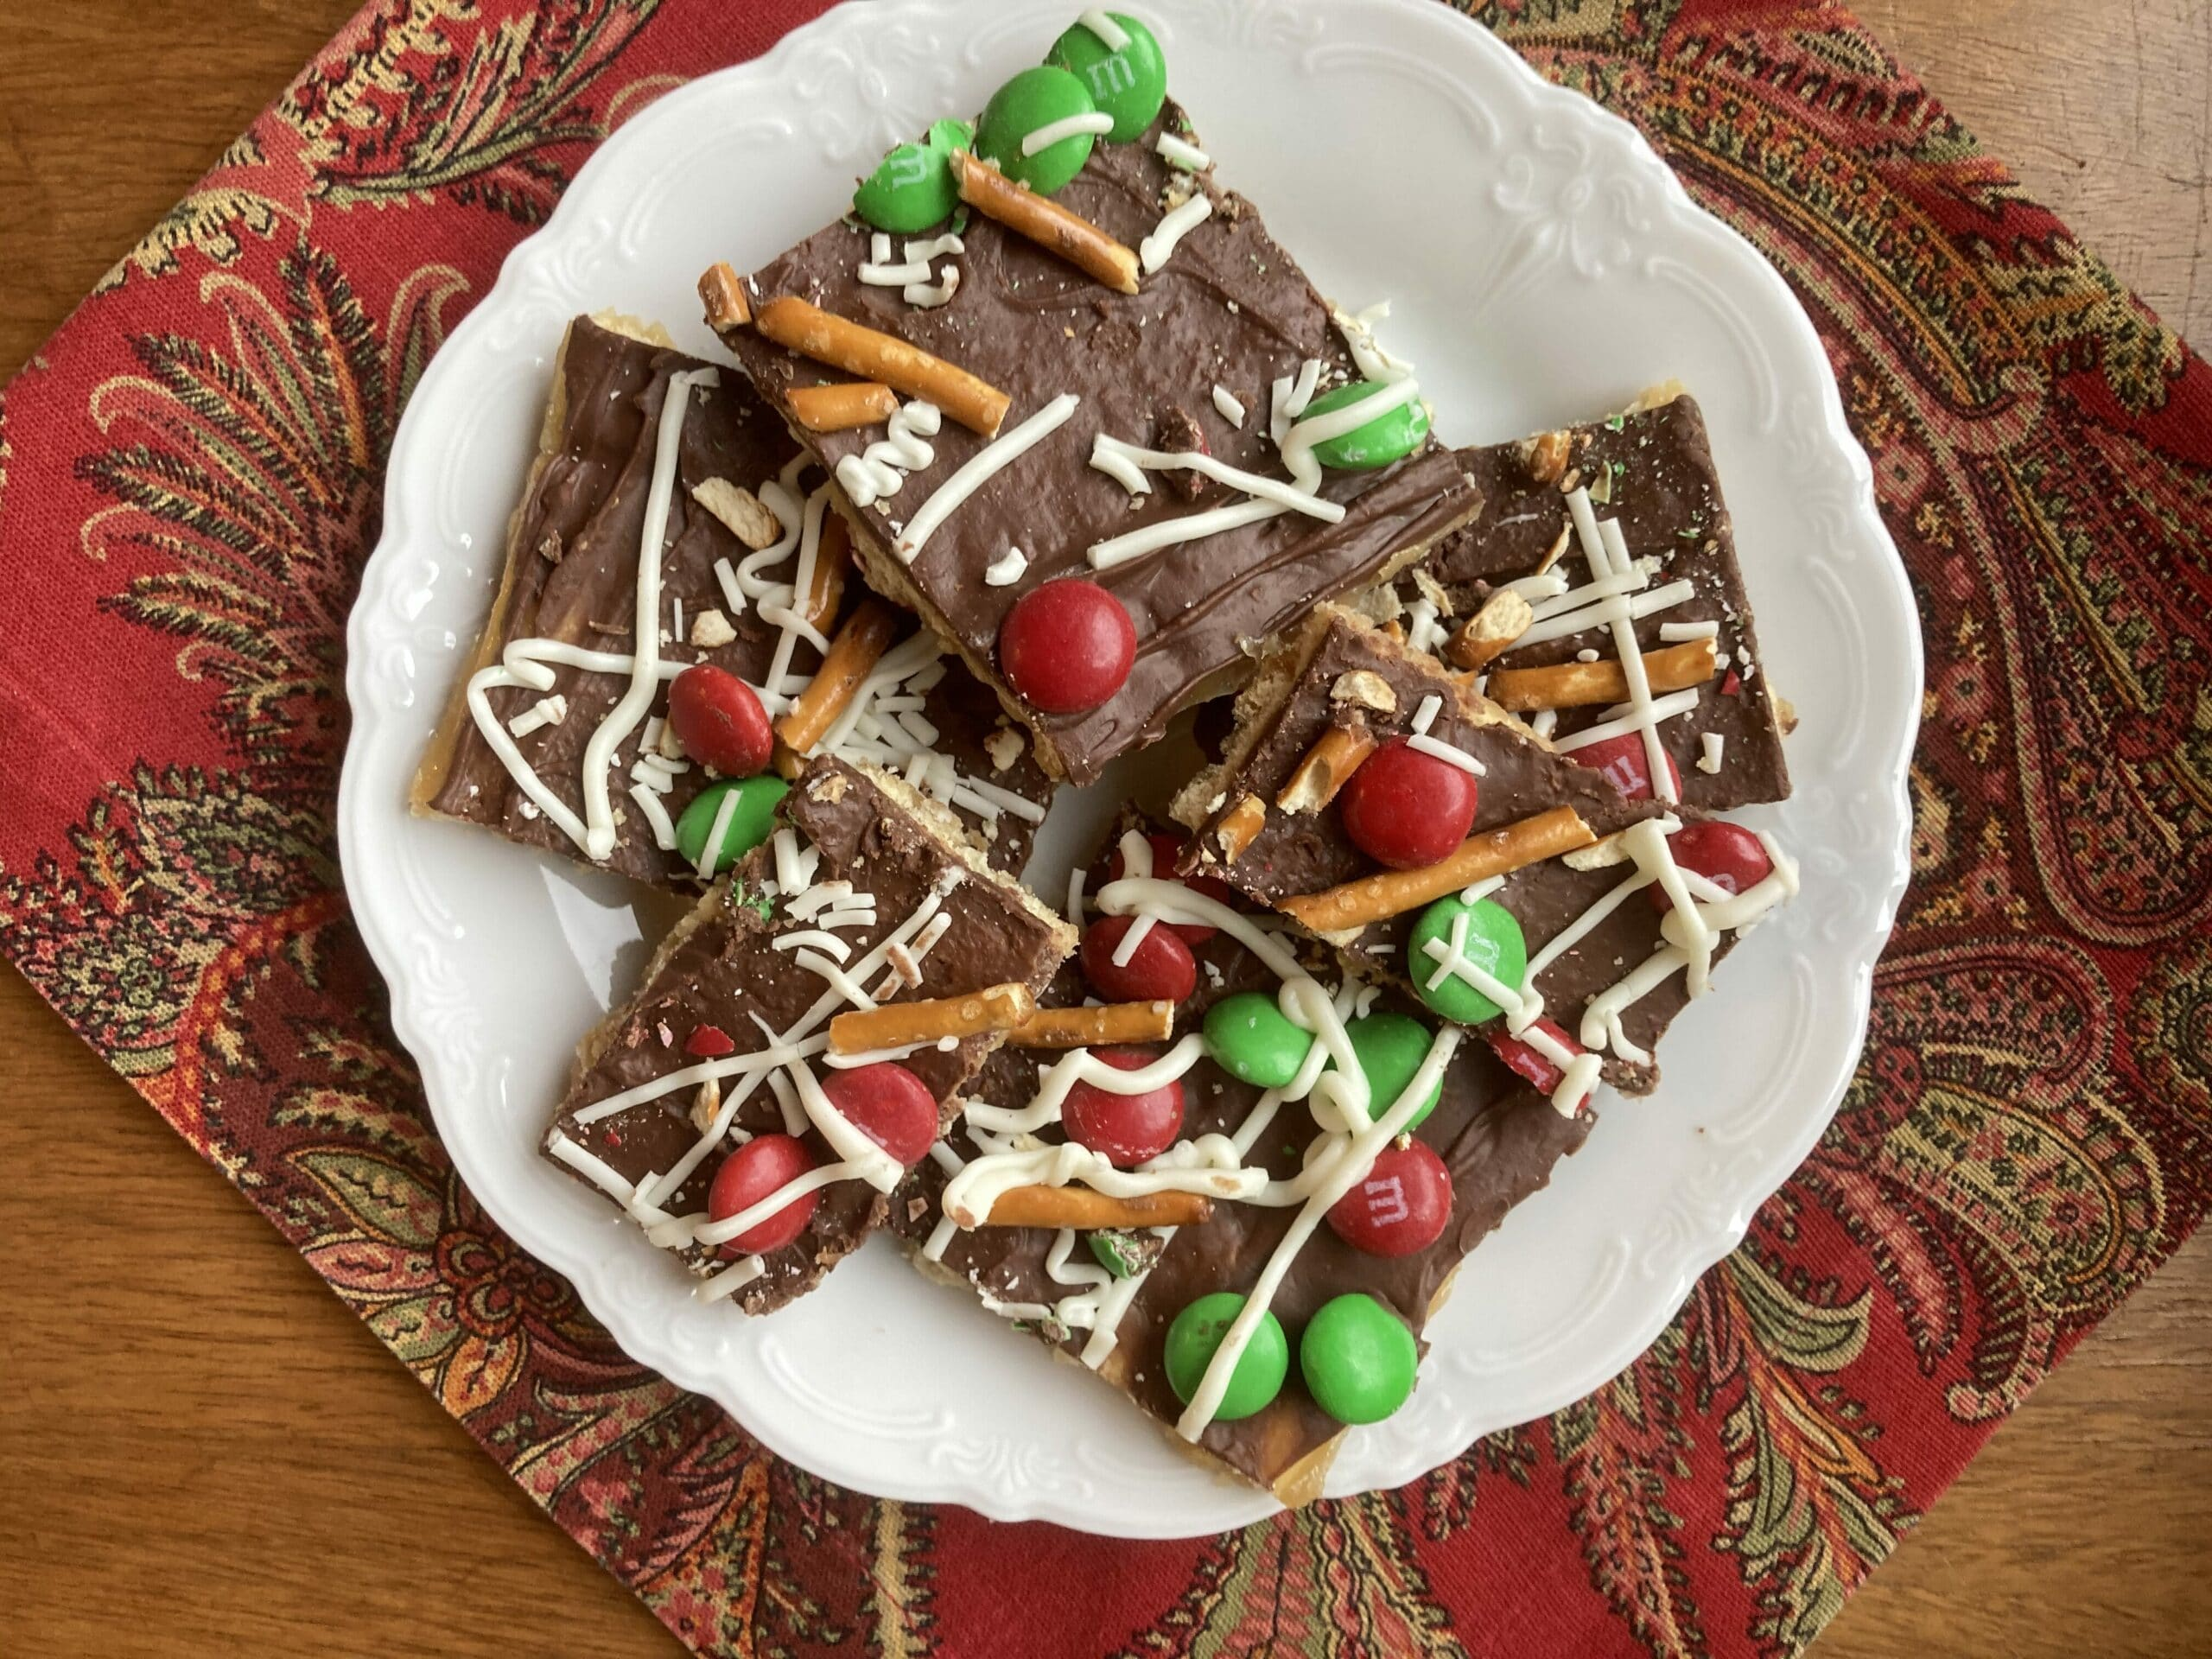 Chocolate candy with pretzels and M&M's